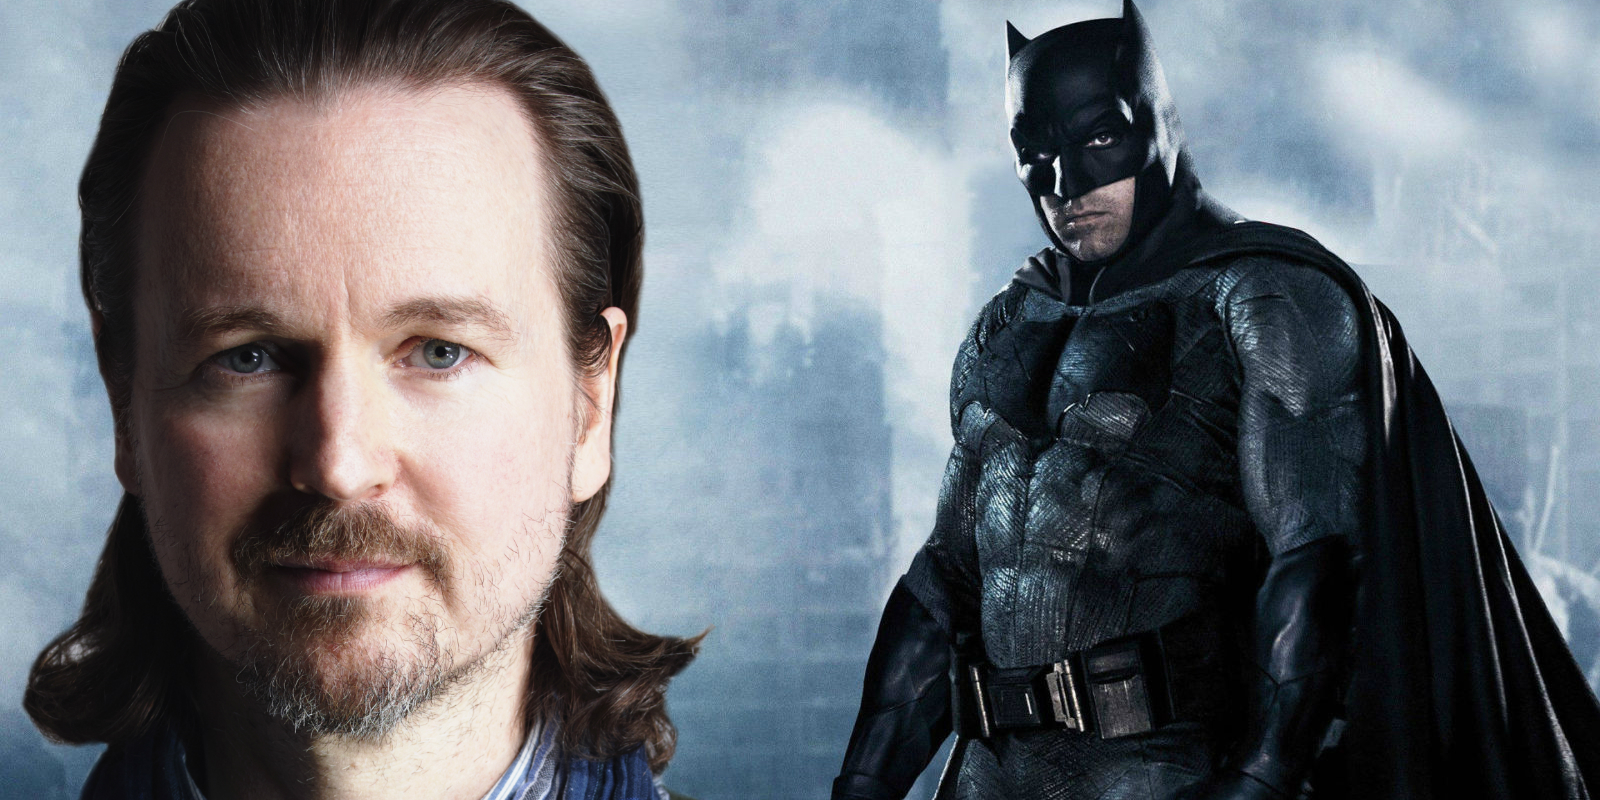 Matt Reeves - The Batman